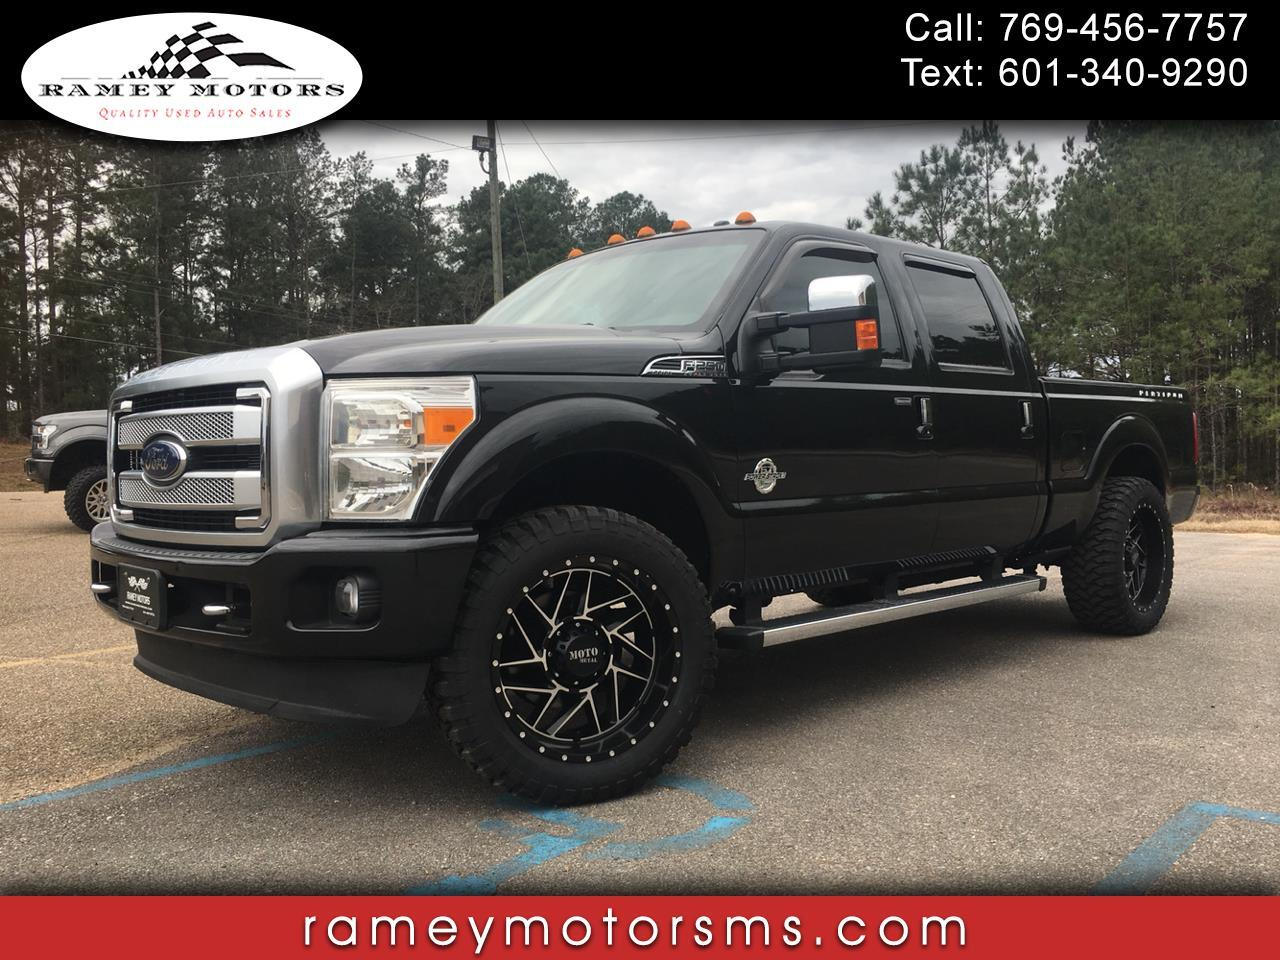 2013 Ford Super Duty F-250 SRW 4WD CREWCAB PLATINUM SHORTBED CUSTOM LEVELED